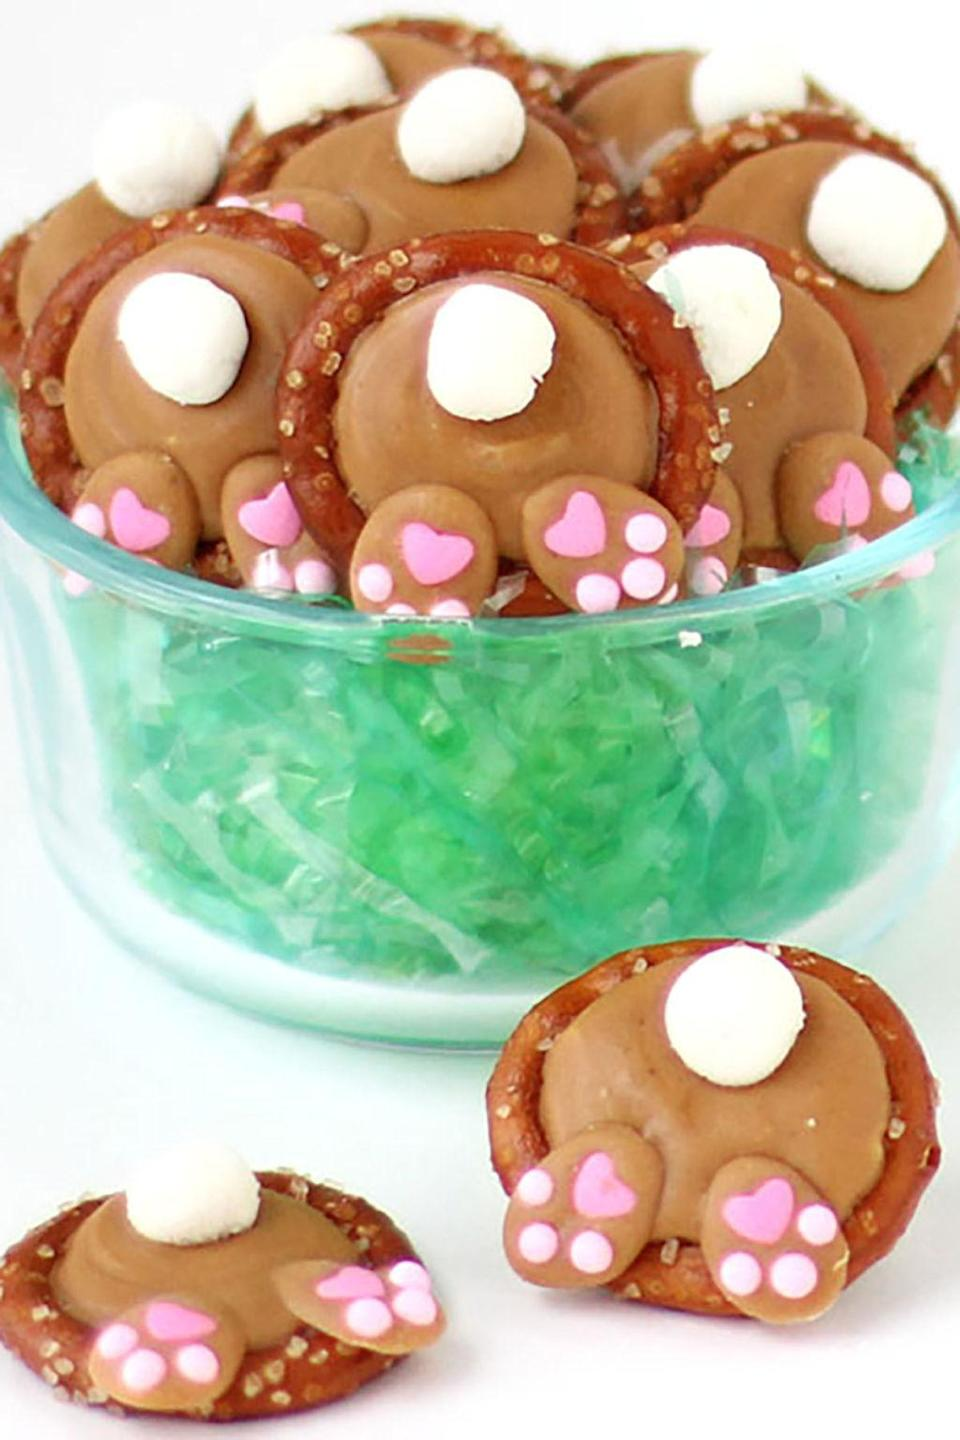 """<p><span>Why are bunny tails the cutest thing ever? To give your bunnies a nice display, color some coconut flakes green and cover a serving platter with them before arranging the treats. </span></p><p><strong>Get the recipe at <a href=""""http://hungryhappenings.com/2016/03/bunny-butt-pretzels.html/?crlt.pid=camp.Mpy7yy1W9RMG"""" rel=""""nofollow noopener"""" target=""""_blank"""" data-ylk=""""slk:Hungry Happenings"""" class=""""link rapid-noclick-resp"""">Hungry Happenings</a>. </strong></p>"""